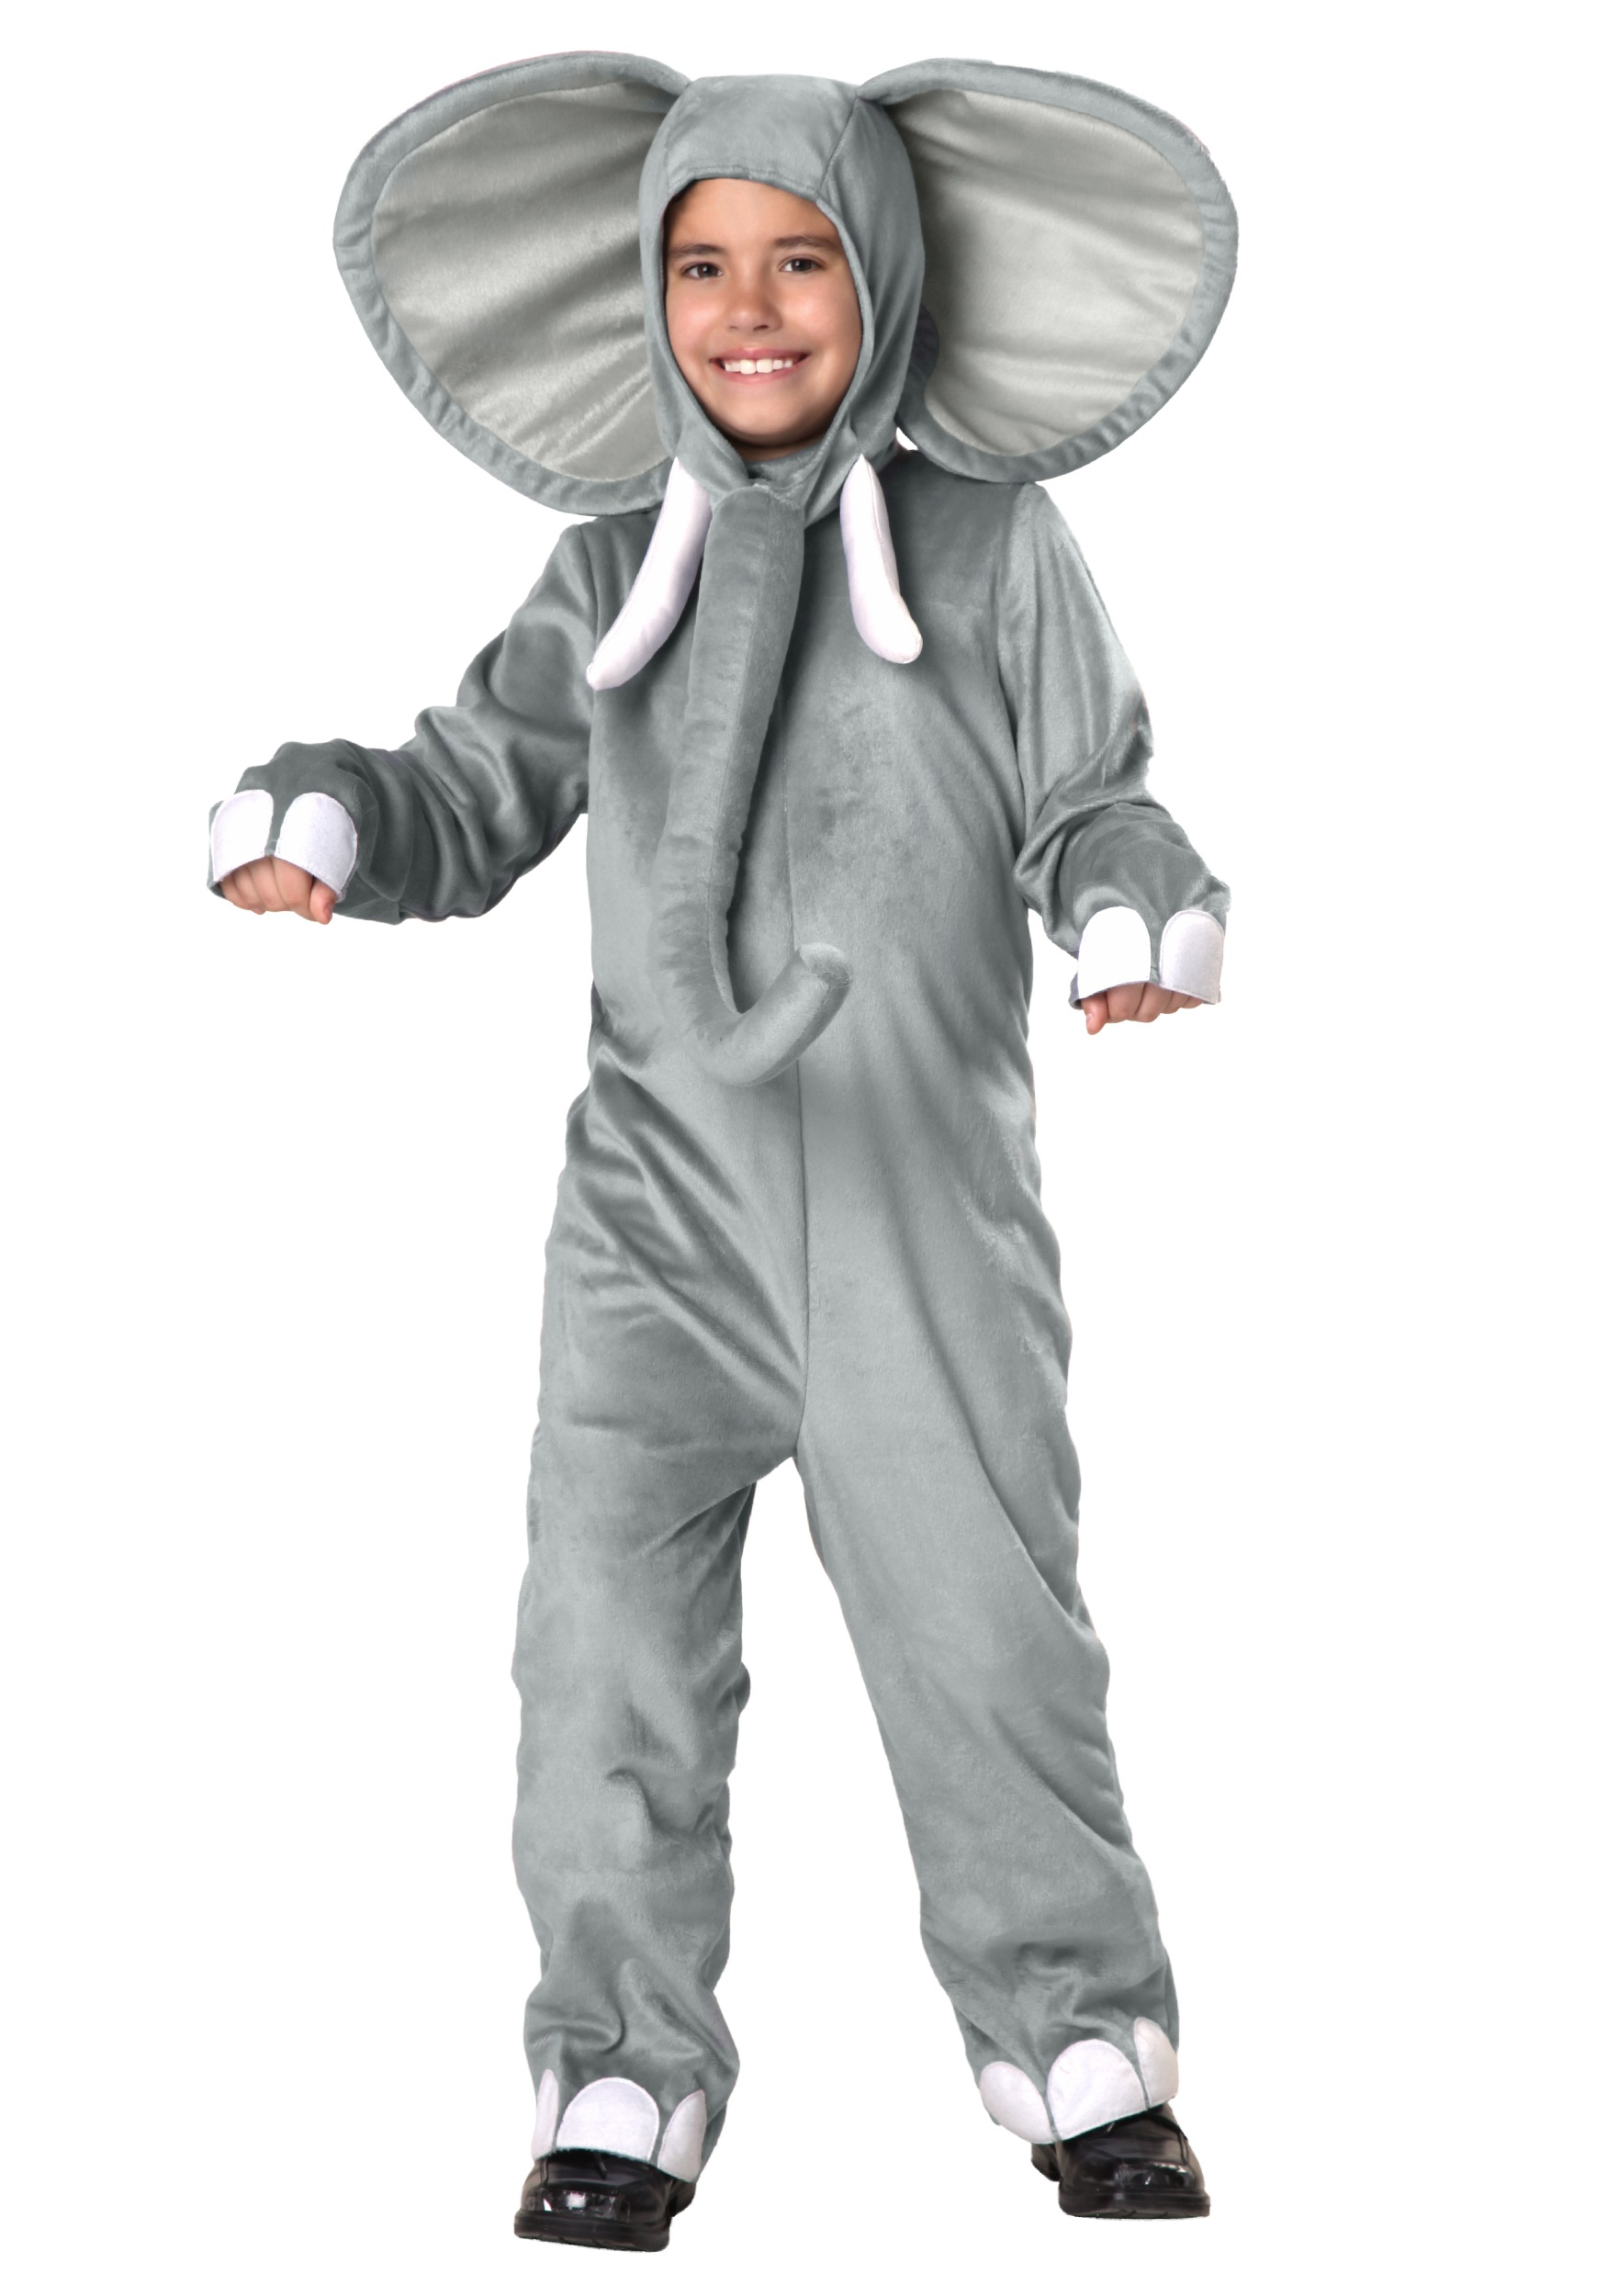 Animal costumes for adults kids halloweencostumes child lil elephant costume solutioingenieria Image collections